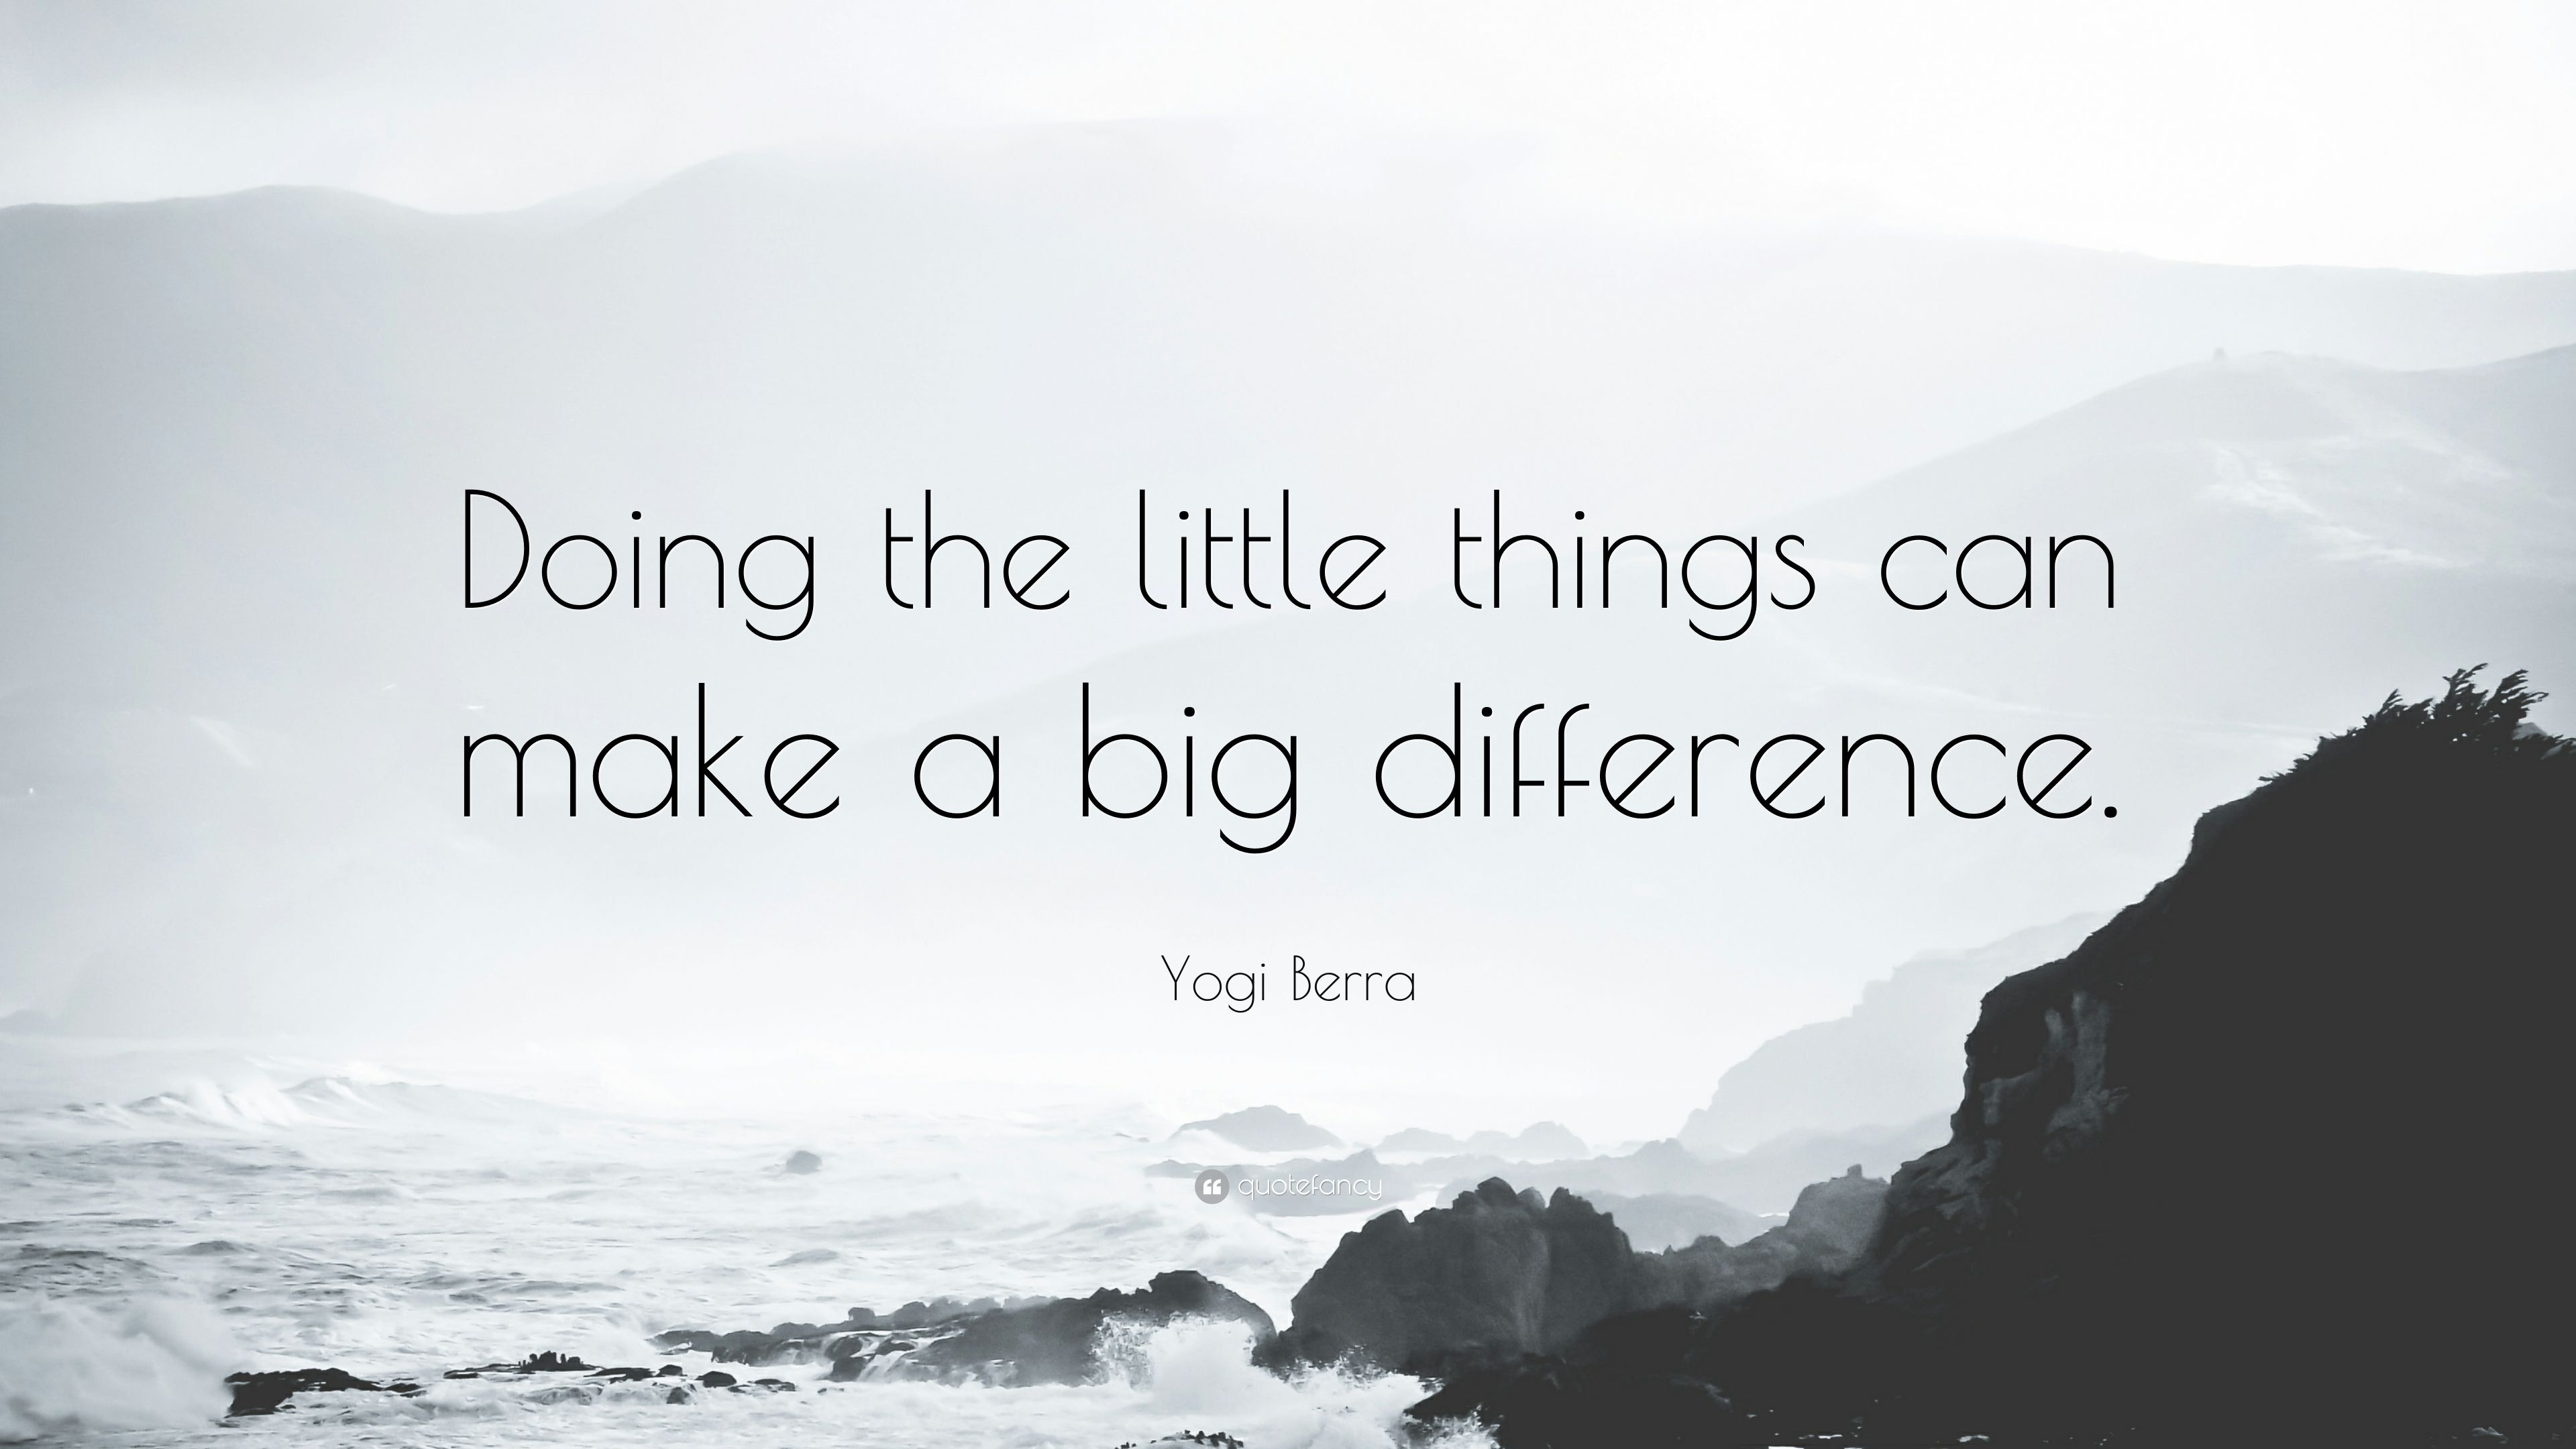 Quote-Doing-the-little-things-can-make-a-big-difference.